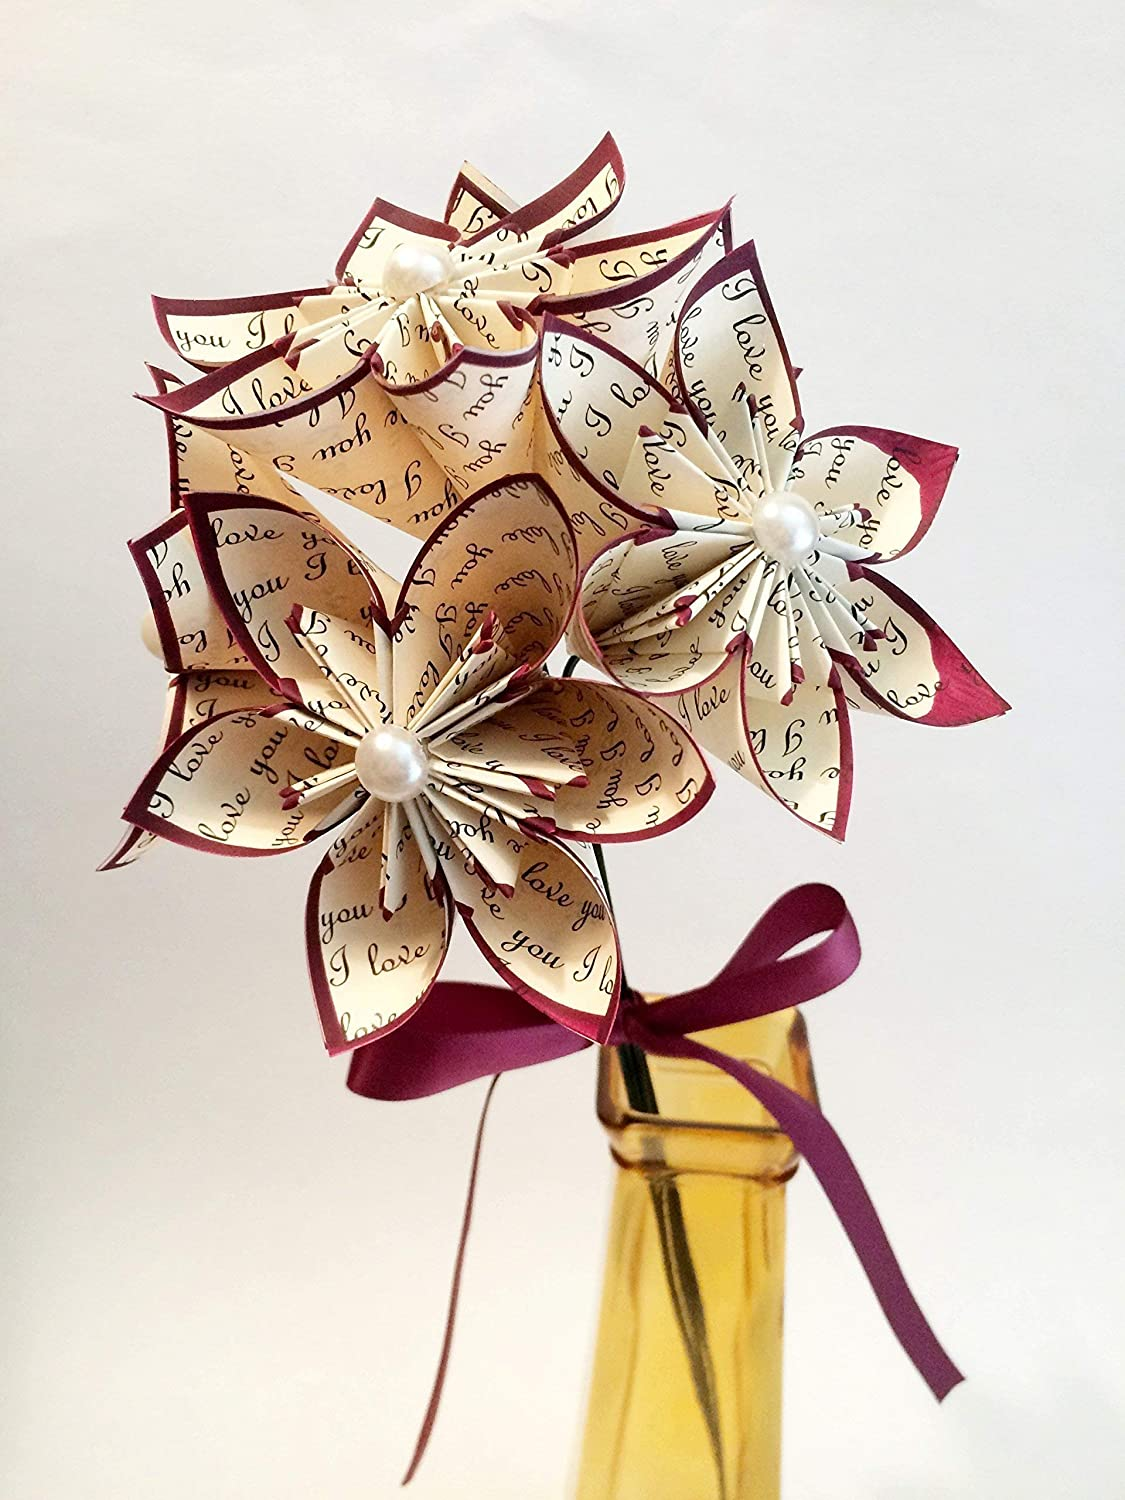 5 I Love You Paper Flowers Ready To Ship Handmade Anniversary Gift Wedding Decor Origami Small Bouquet